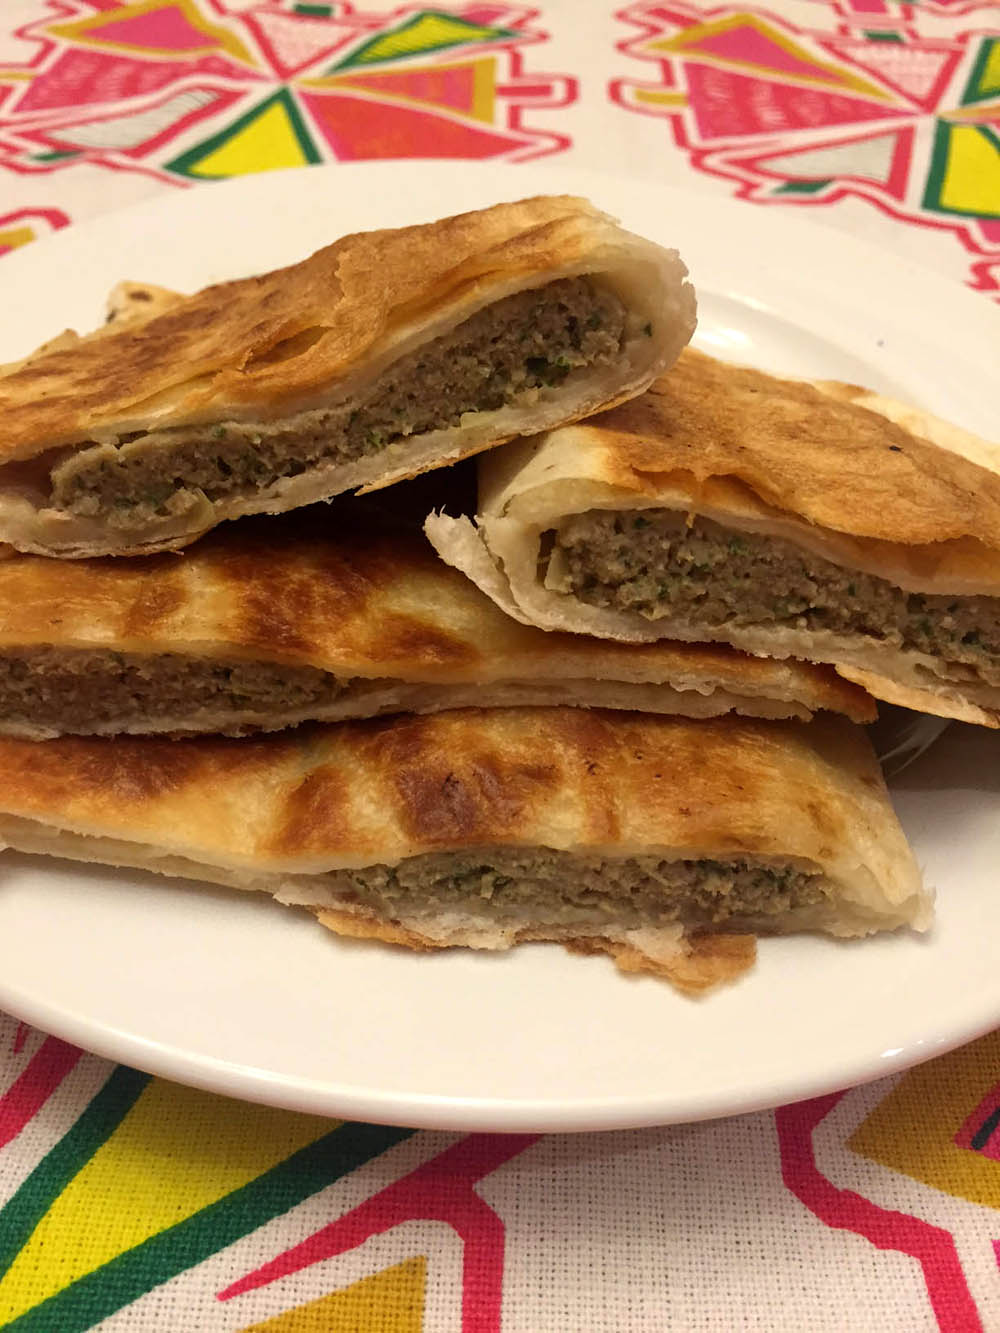 Russian Chebureki Recipe - How To Make Ground Beef Turnovers